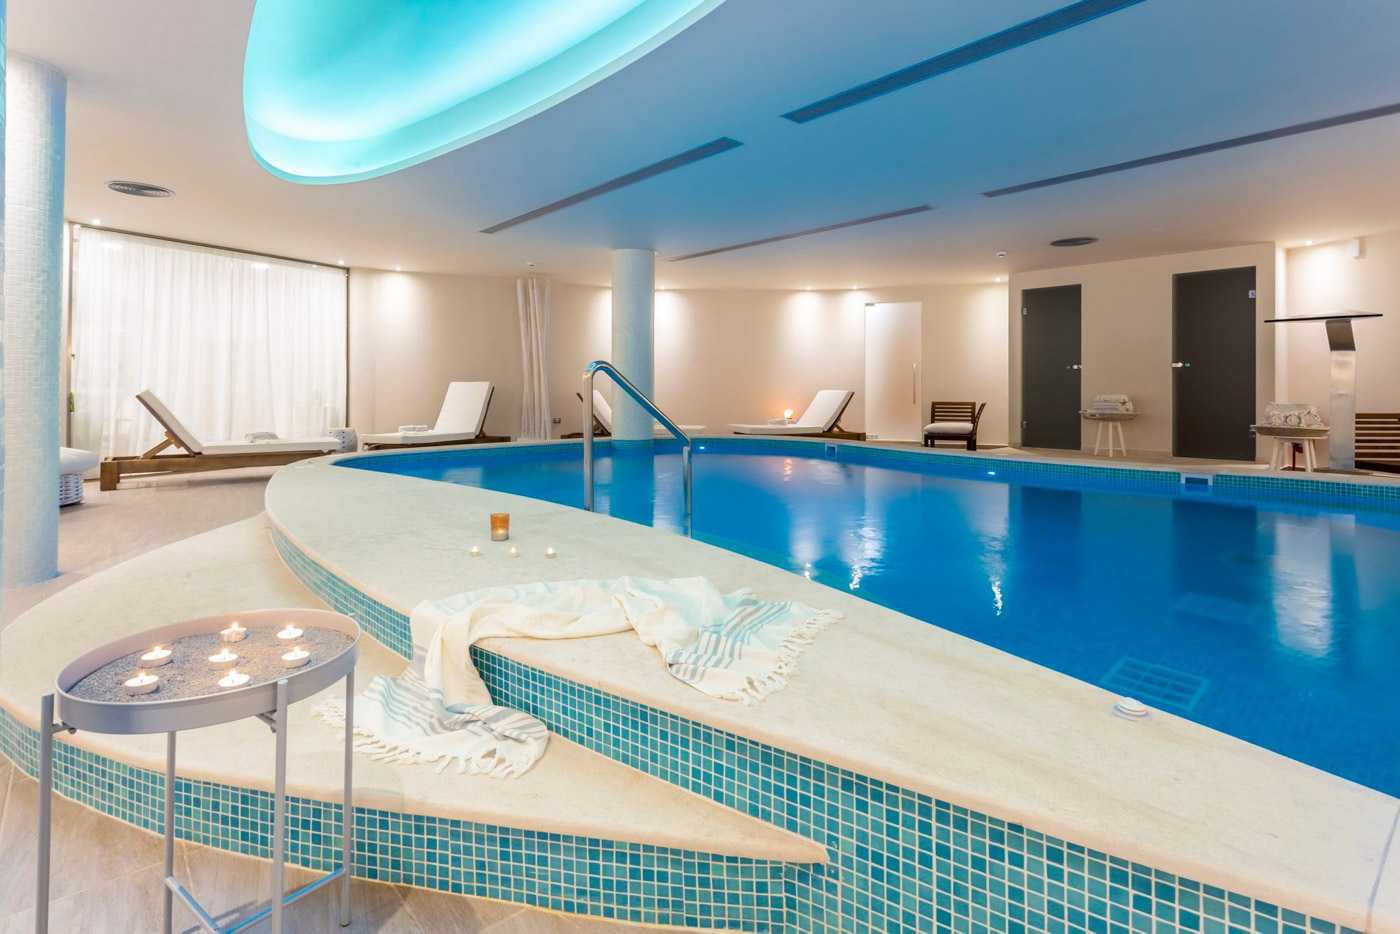 Elysian luxury hotel and spa Kalamata inside pool and spa